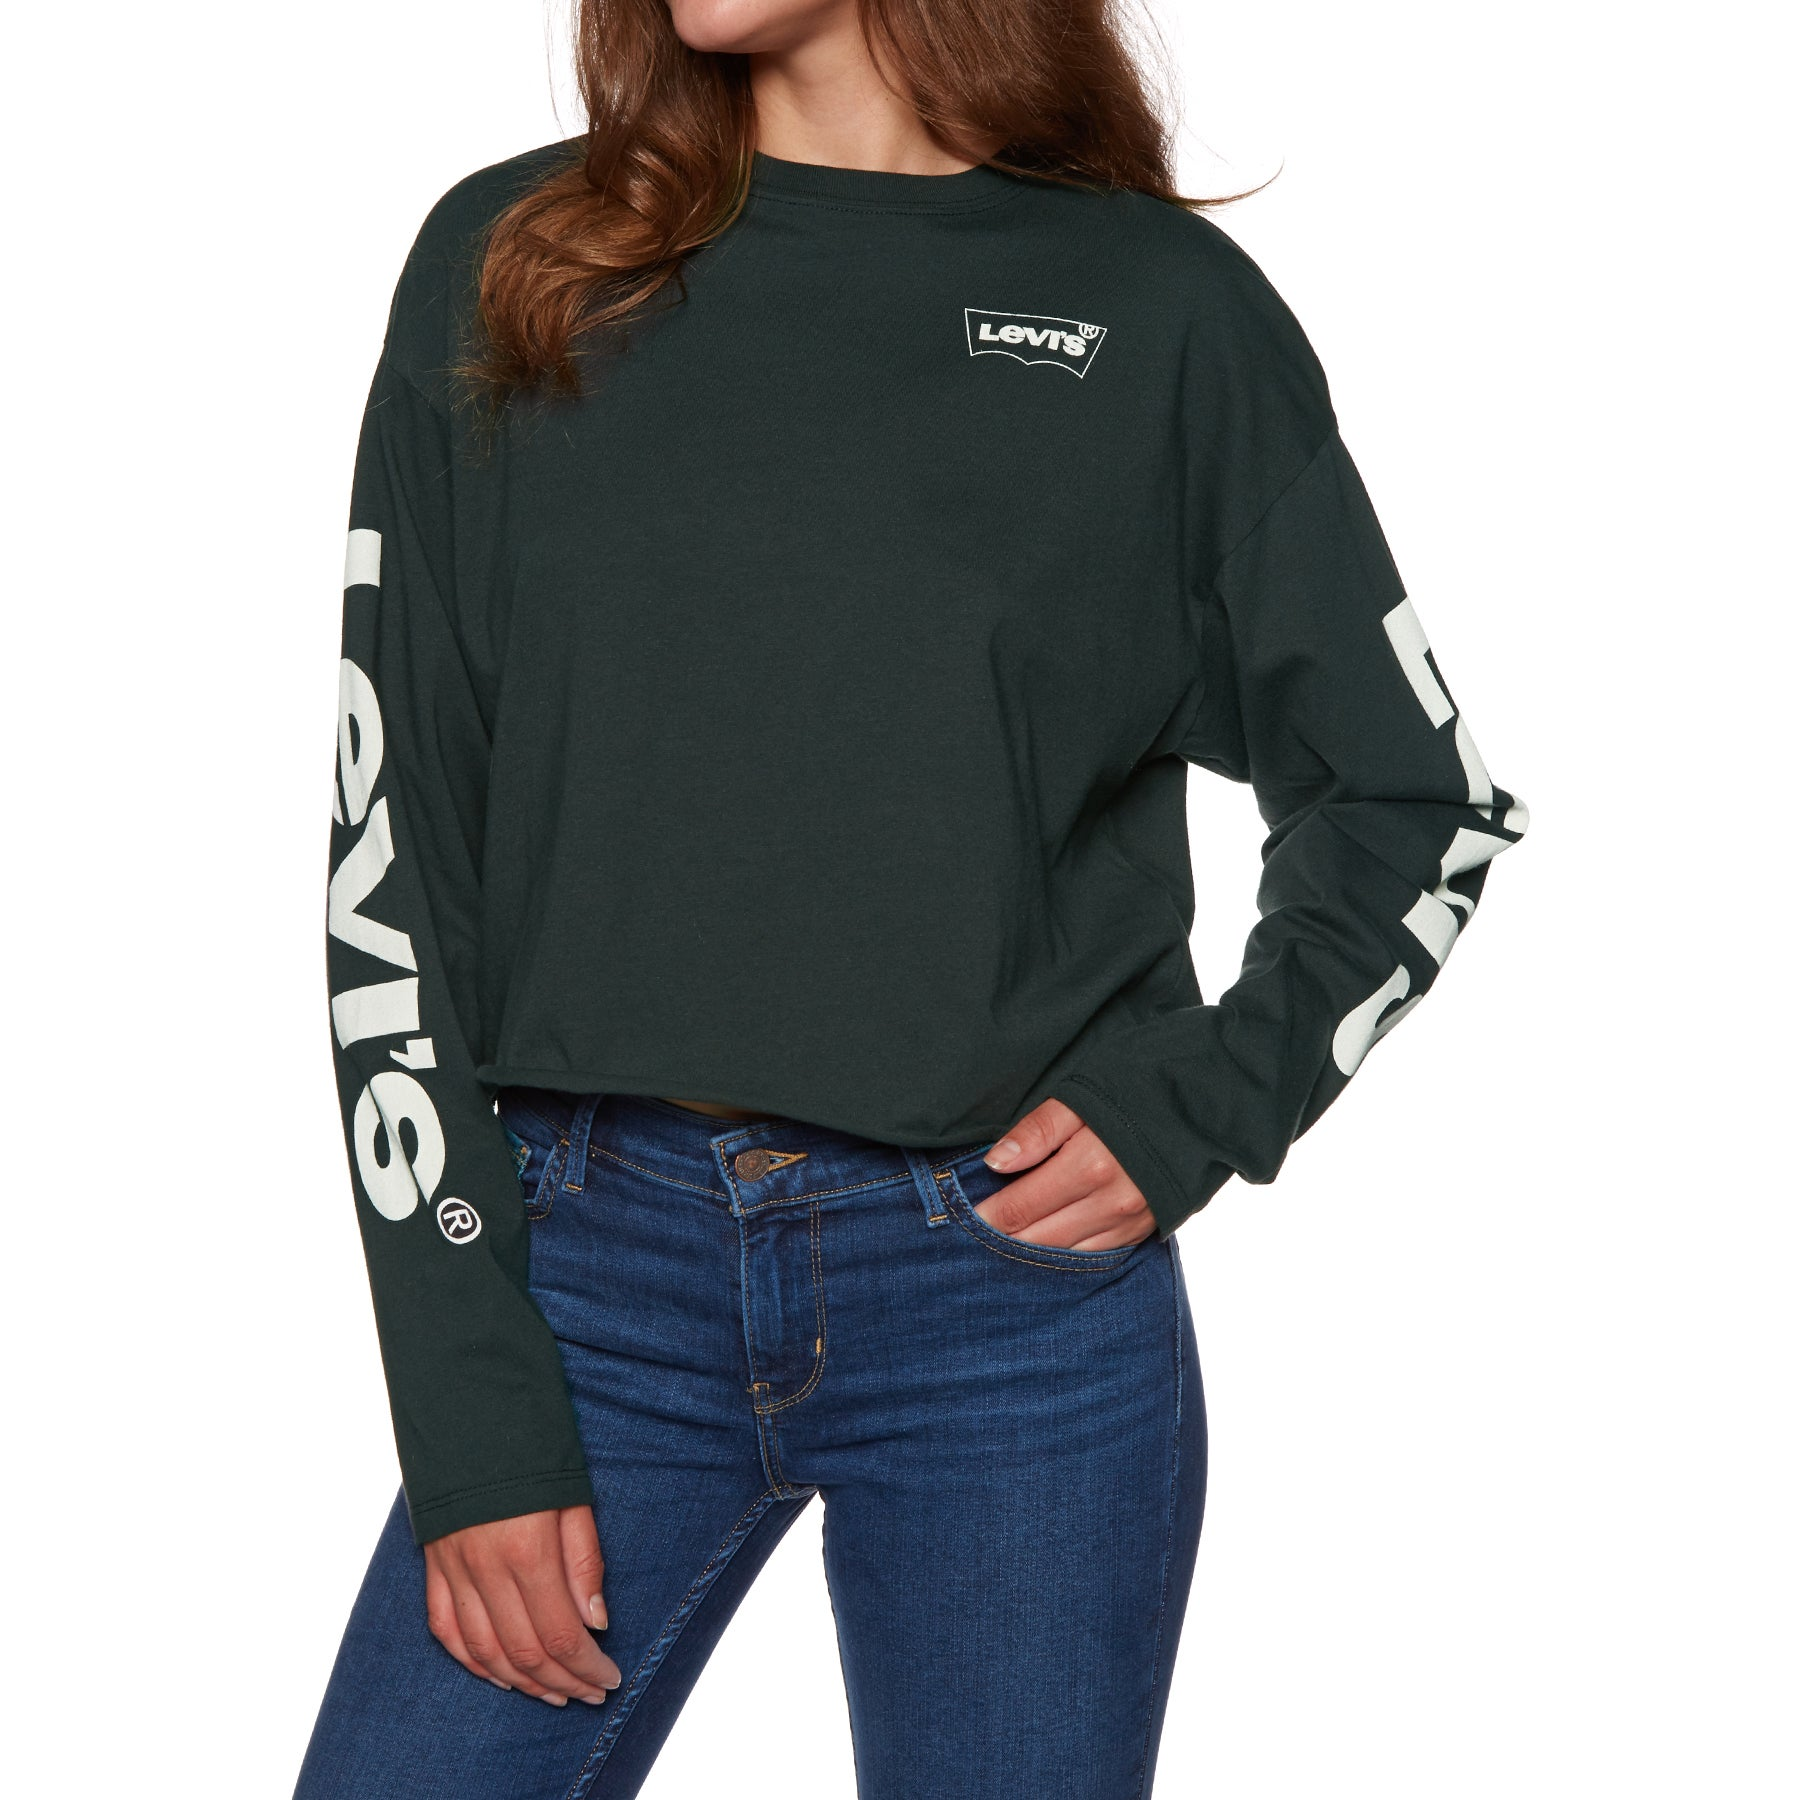 Levis Graphic Crop Ls Tee Housemark Play Cavi Ladies Long Sleeve T-Shirt